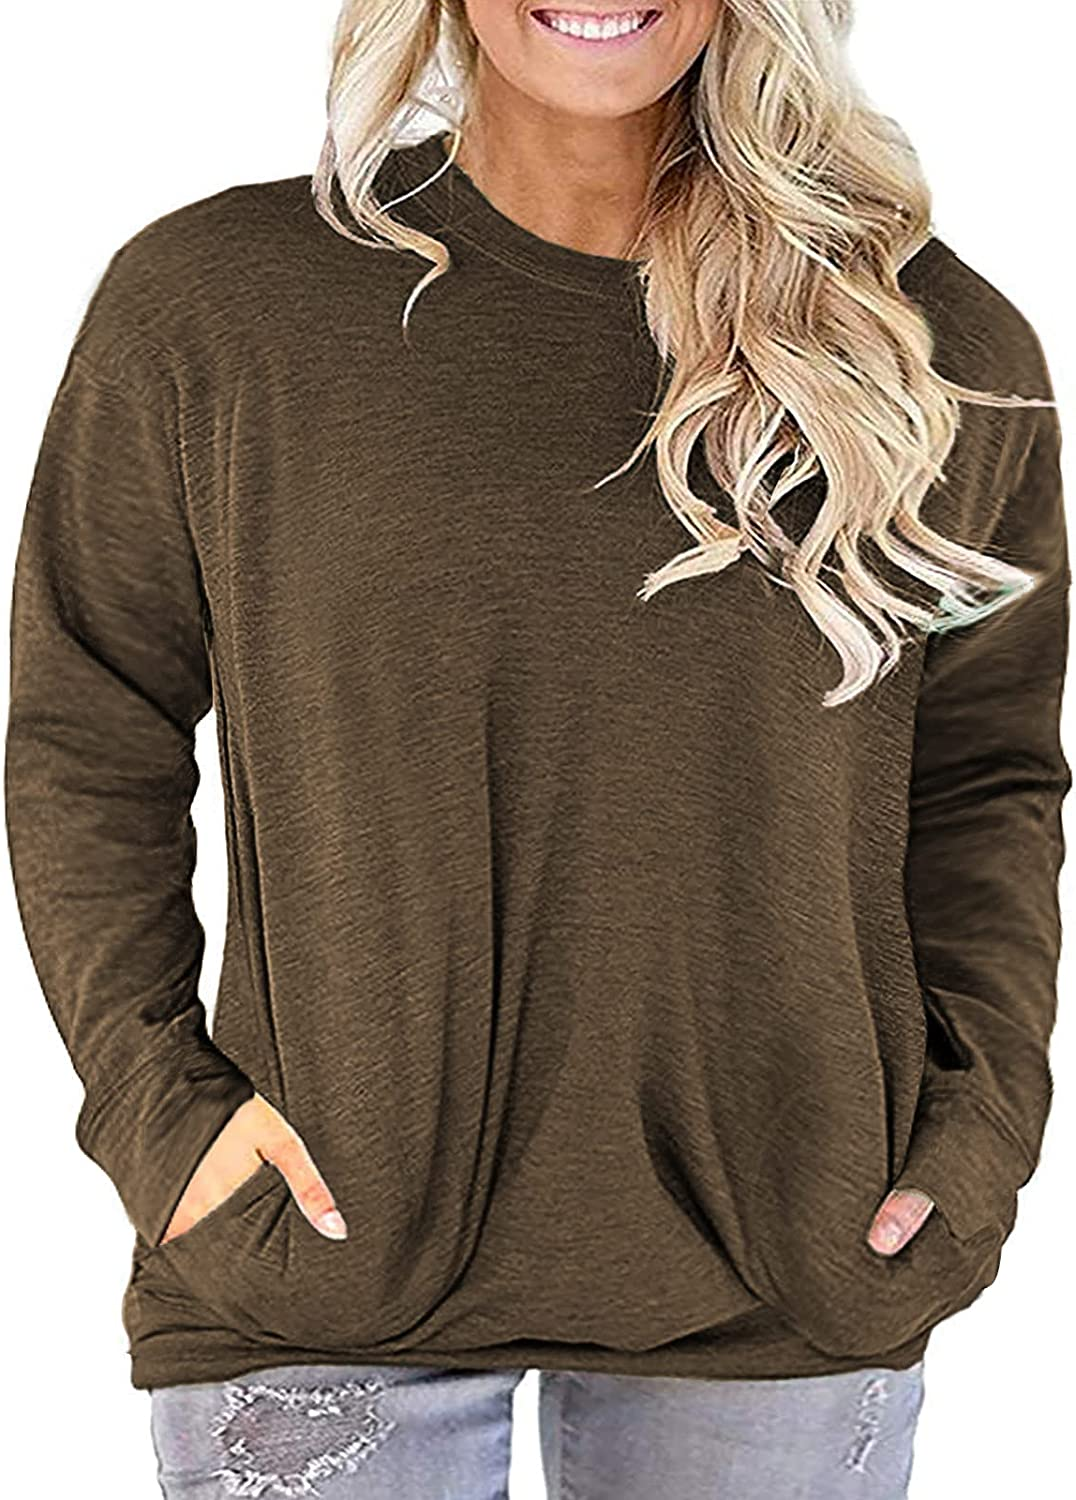 LANREMON Womens Plus Size Tops Long Sleeve Shirts Casual Round Neck Tunic Tops with Pockets